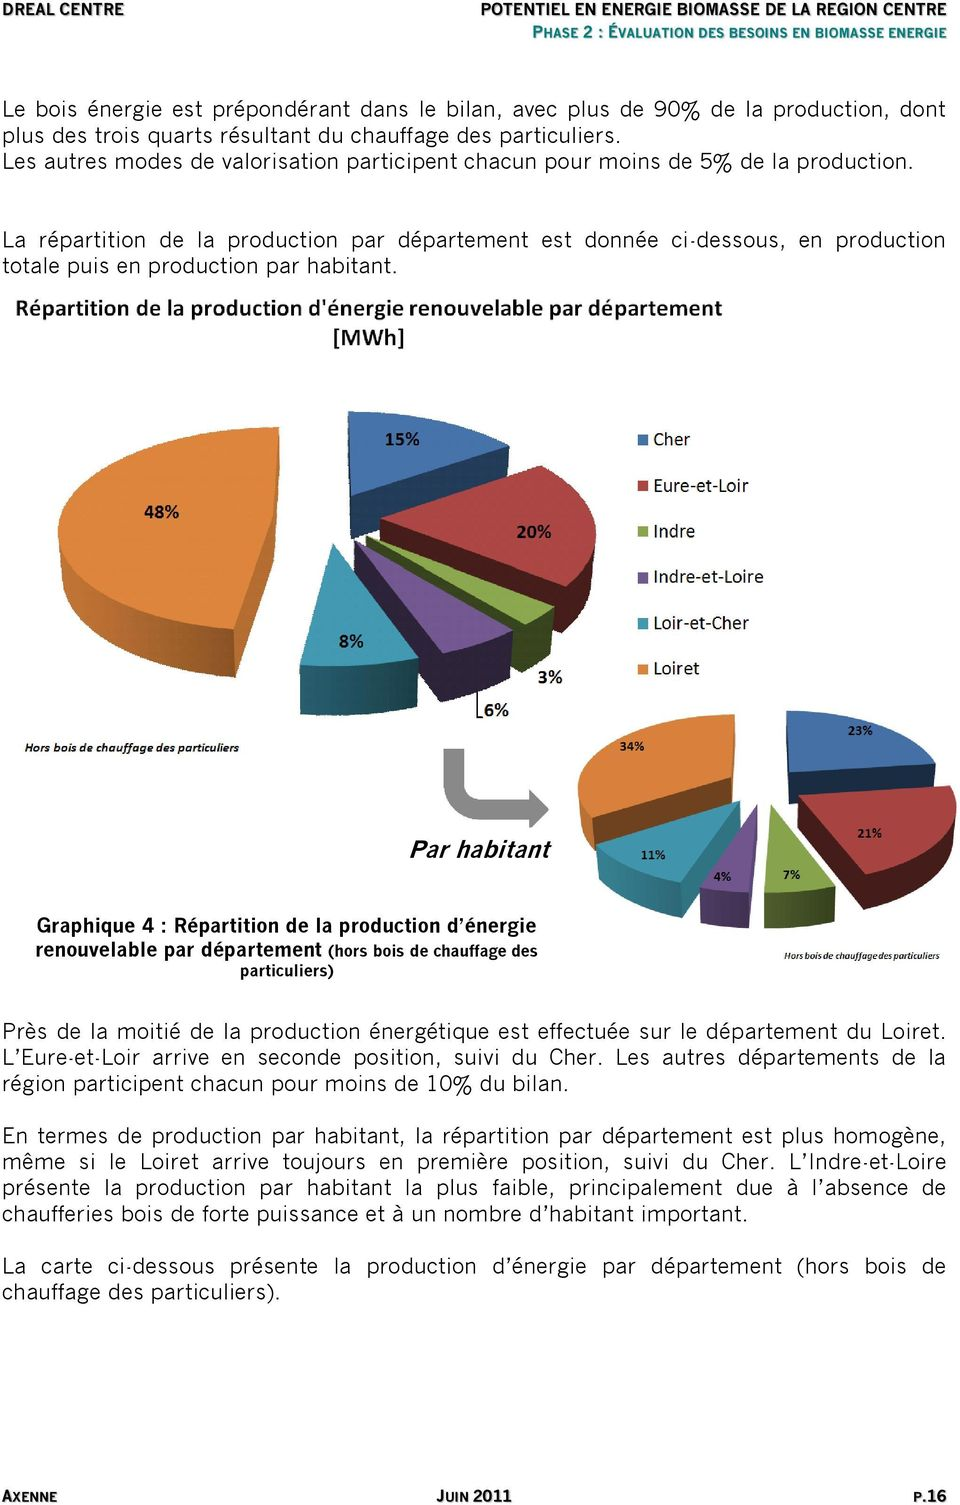 La répartition de la production par département est donnée ci-dessous, en production totale puis en production par habitant.